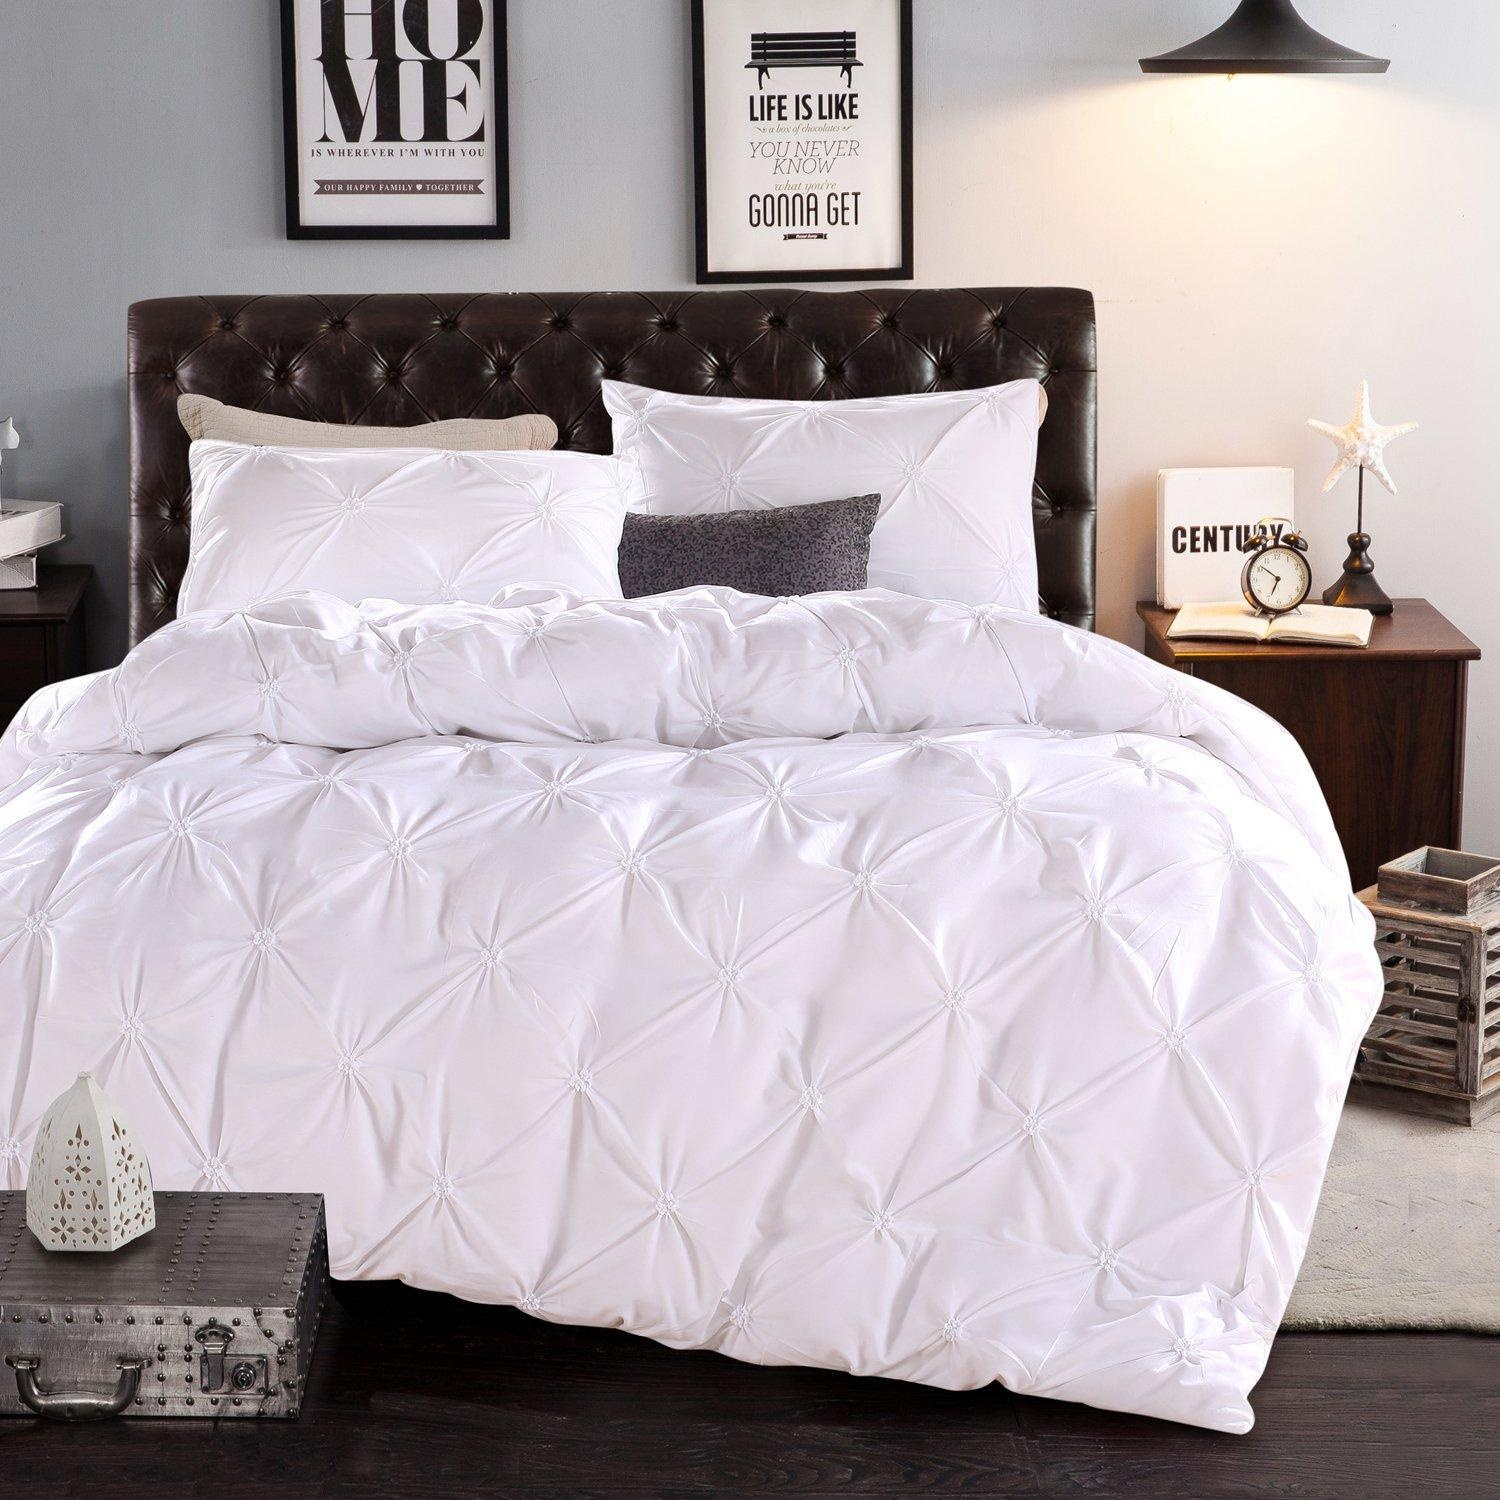 Queen Bed Set Bedroom Wonderful Queen Size Bedding Sets For Bedroom